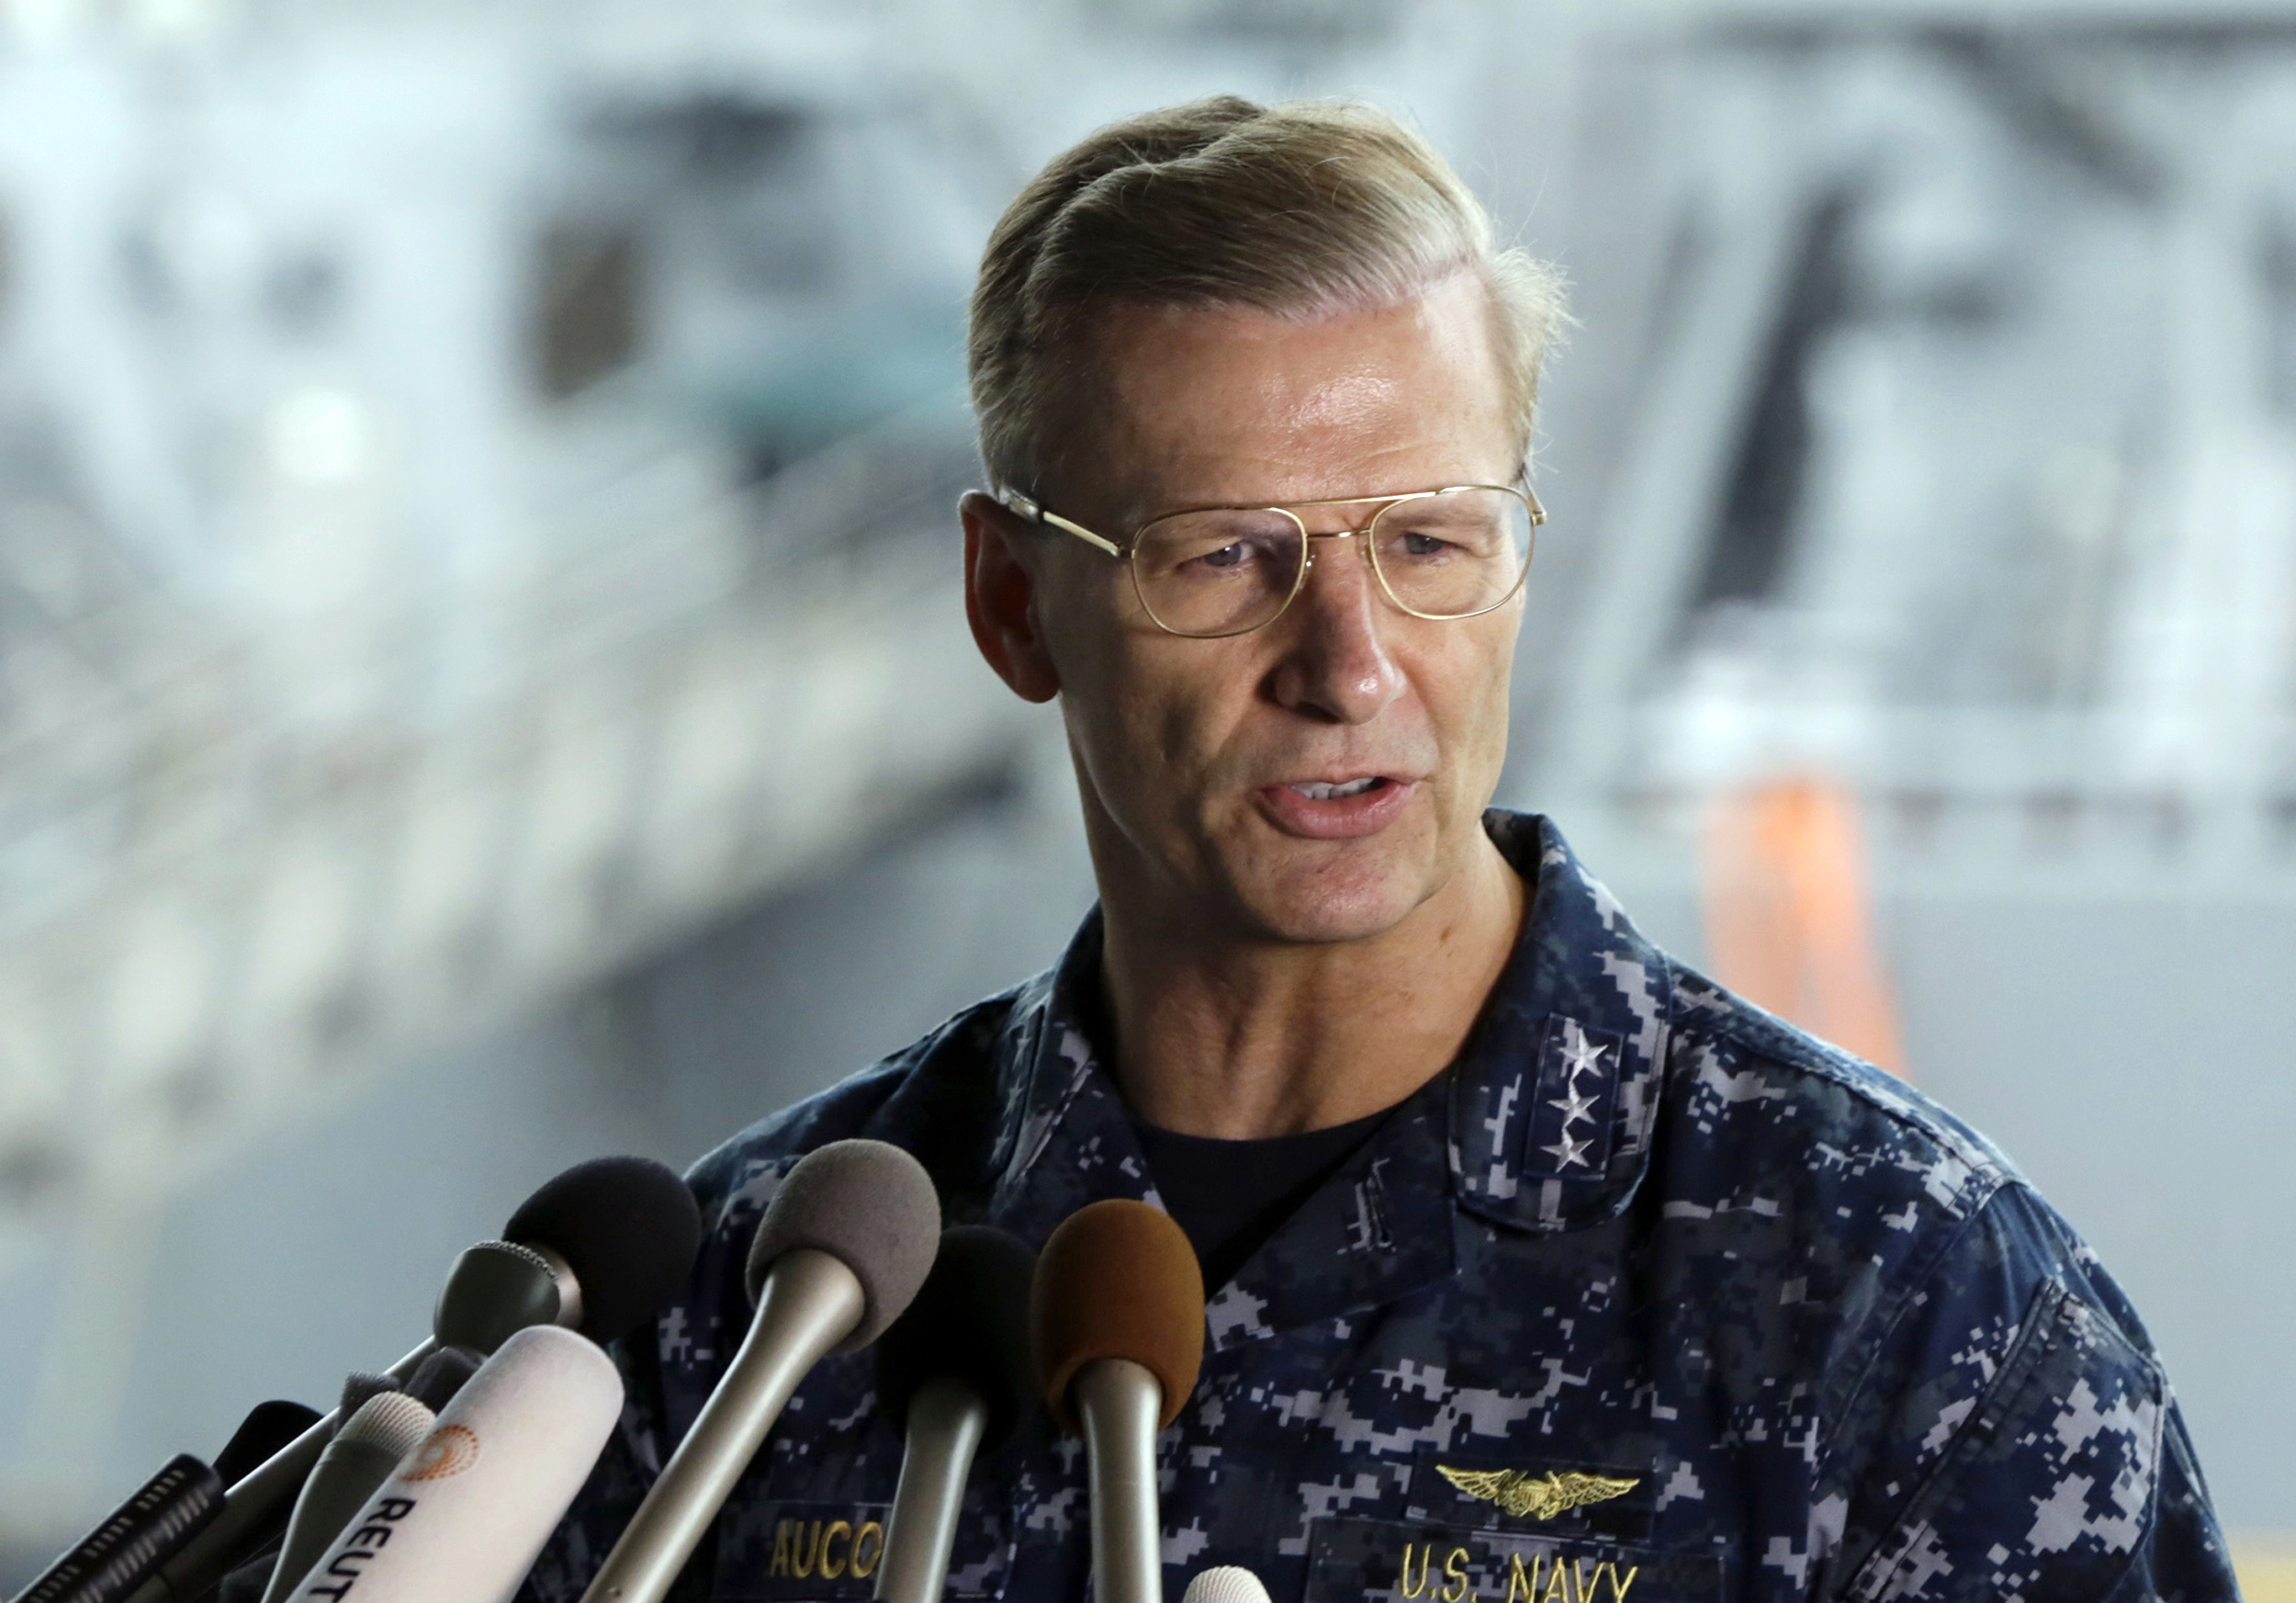 US Navy to sack fleet commander after USS John S McCain collision